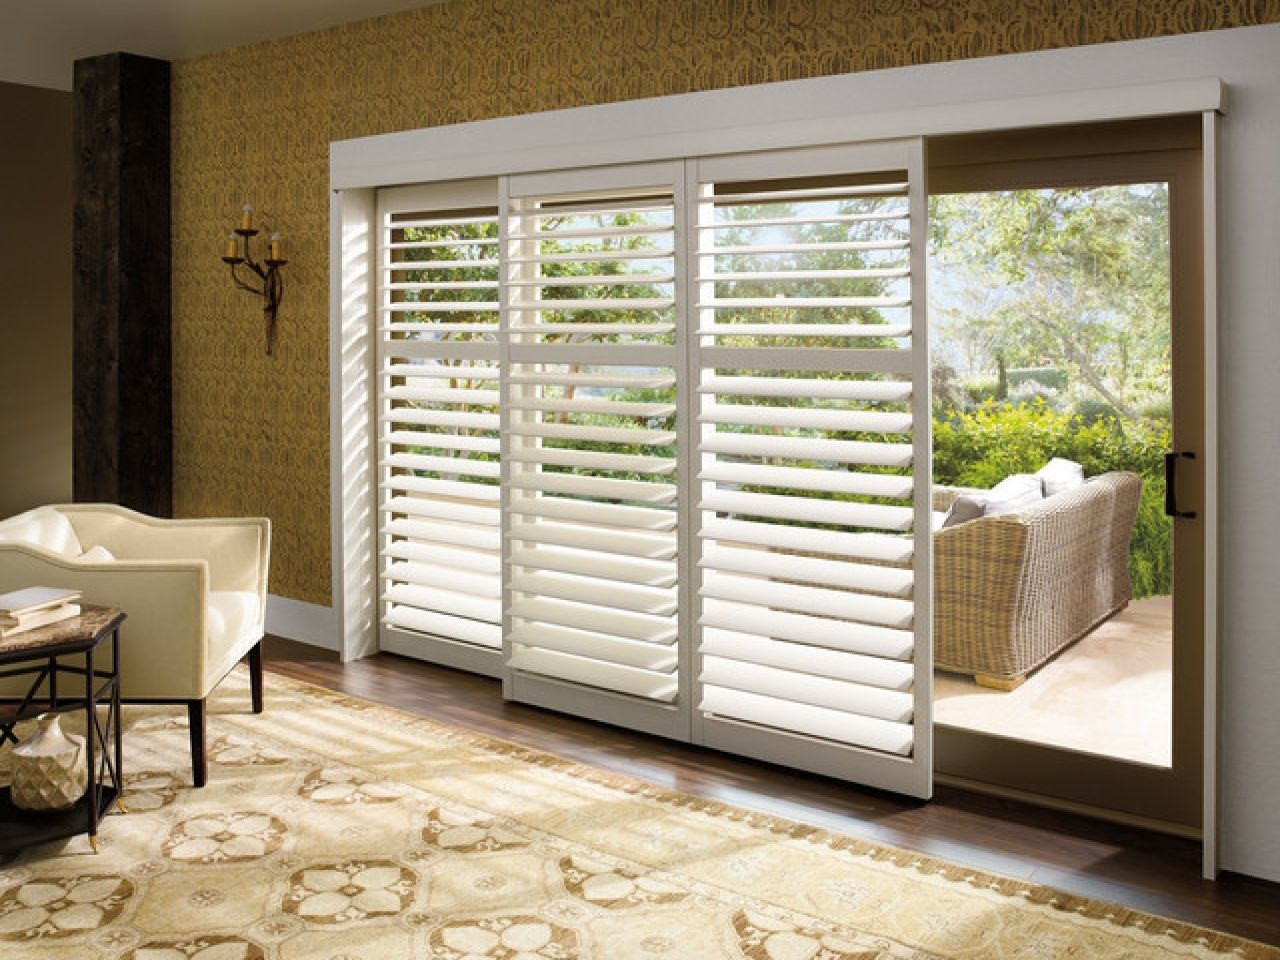 Window covering for patio doors bukuweb pinterest